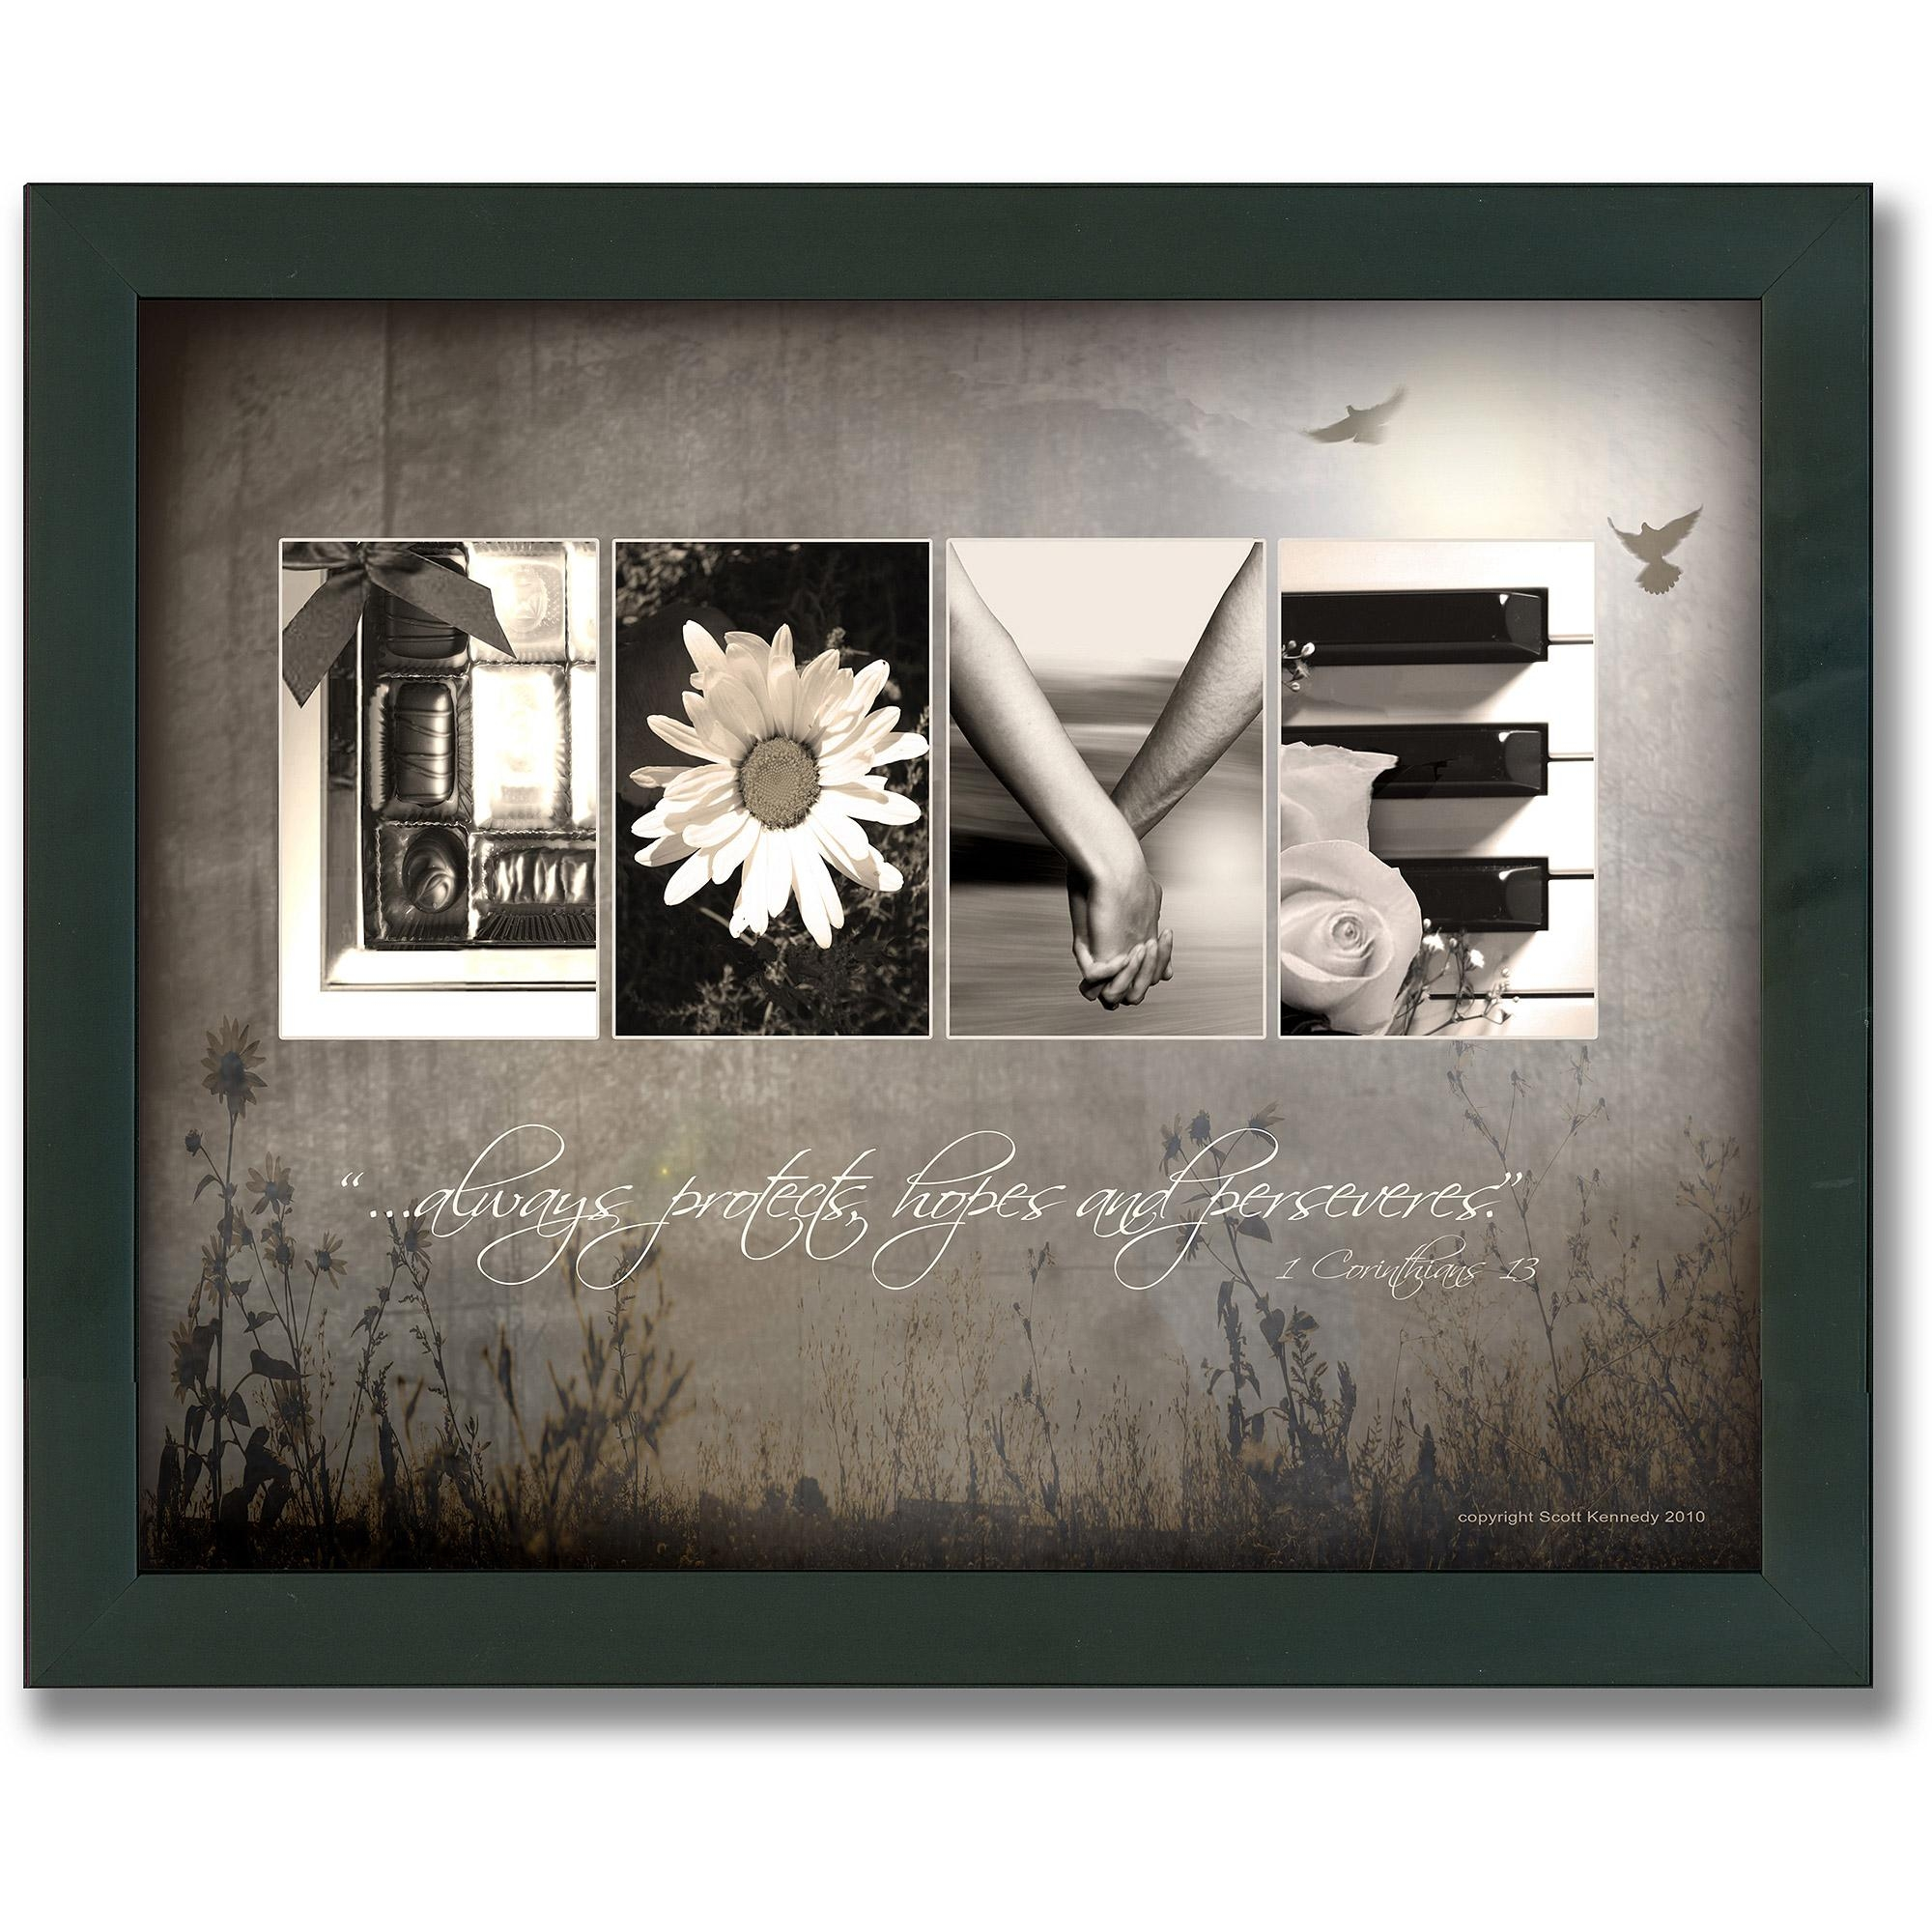 Personal Prints Love Letters Framed Canvas Wall Art – Walmart For Walmart Framed Art (Image 8 of 20)